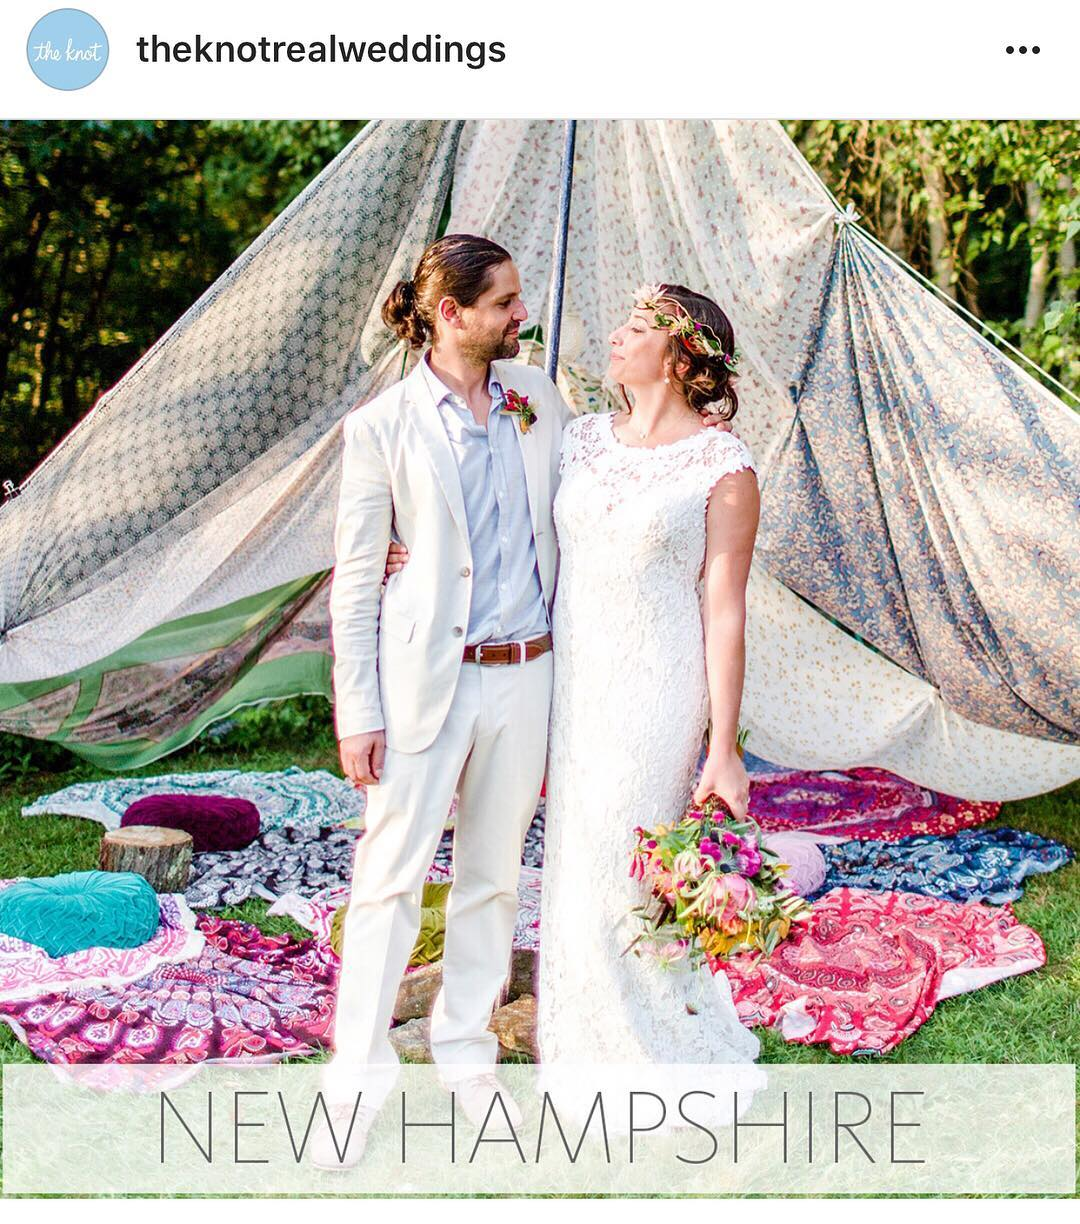 SO happy to see Dor & Nicole's amazing Boho wedding chosen by The Knot to represent NH!!❤❤❤AMAZING pics| @rodeoandcophoto  #theknotrealweddings #50in50 #theknot #bohostyle #amazingcouple #lotusfloraldesigns #lovemyjob